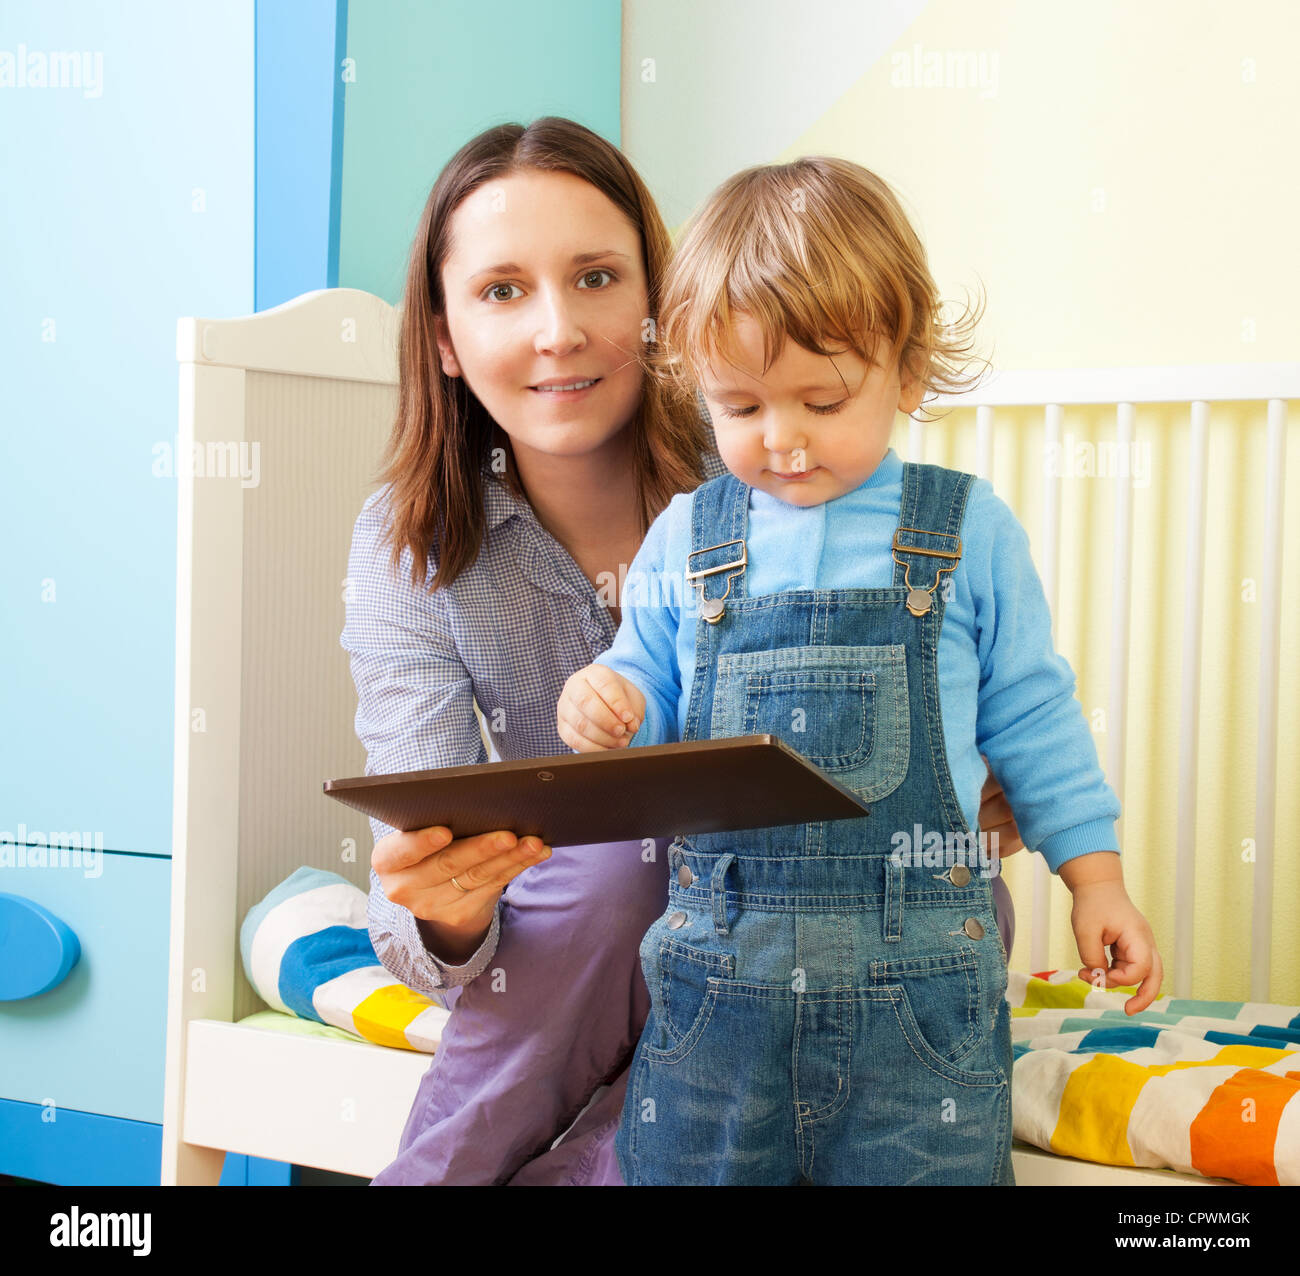 Happy mother with kid and tablet computer in nursery room - Stock Image